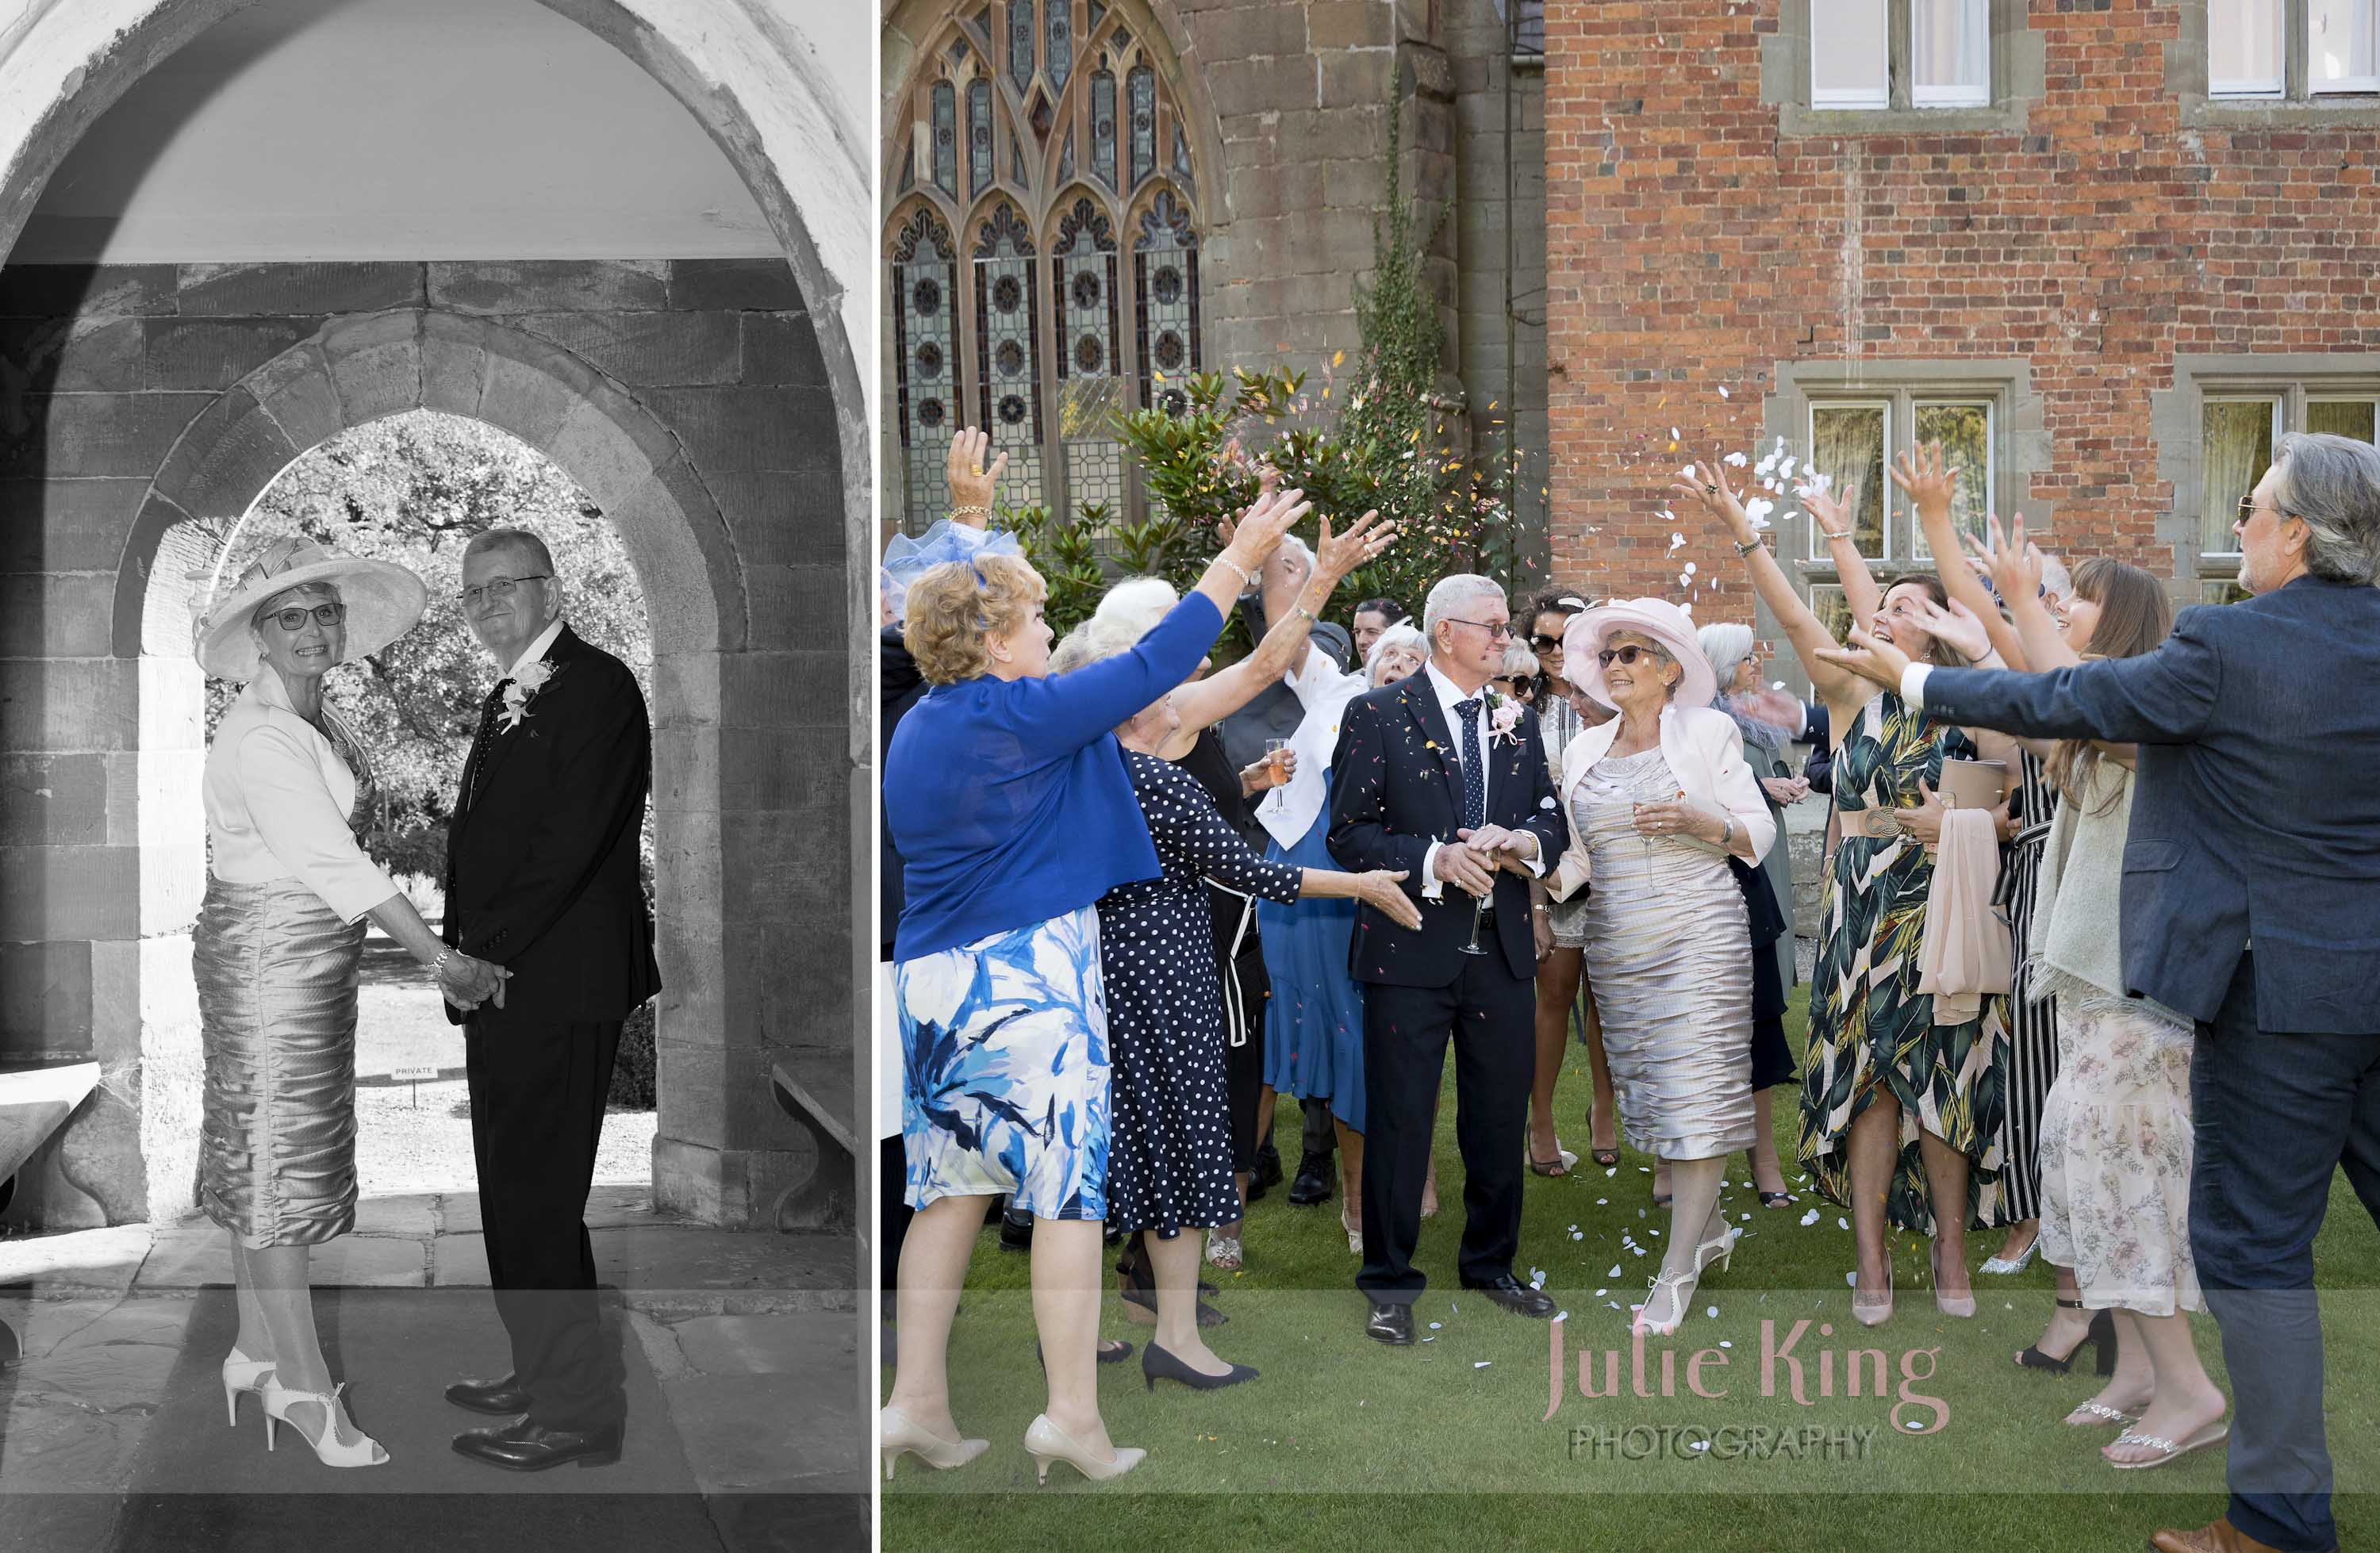 Wedding photography Grafton Manor Bromsgrove, Wedding photography Kidderminster